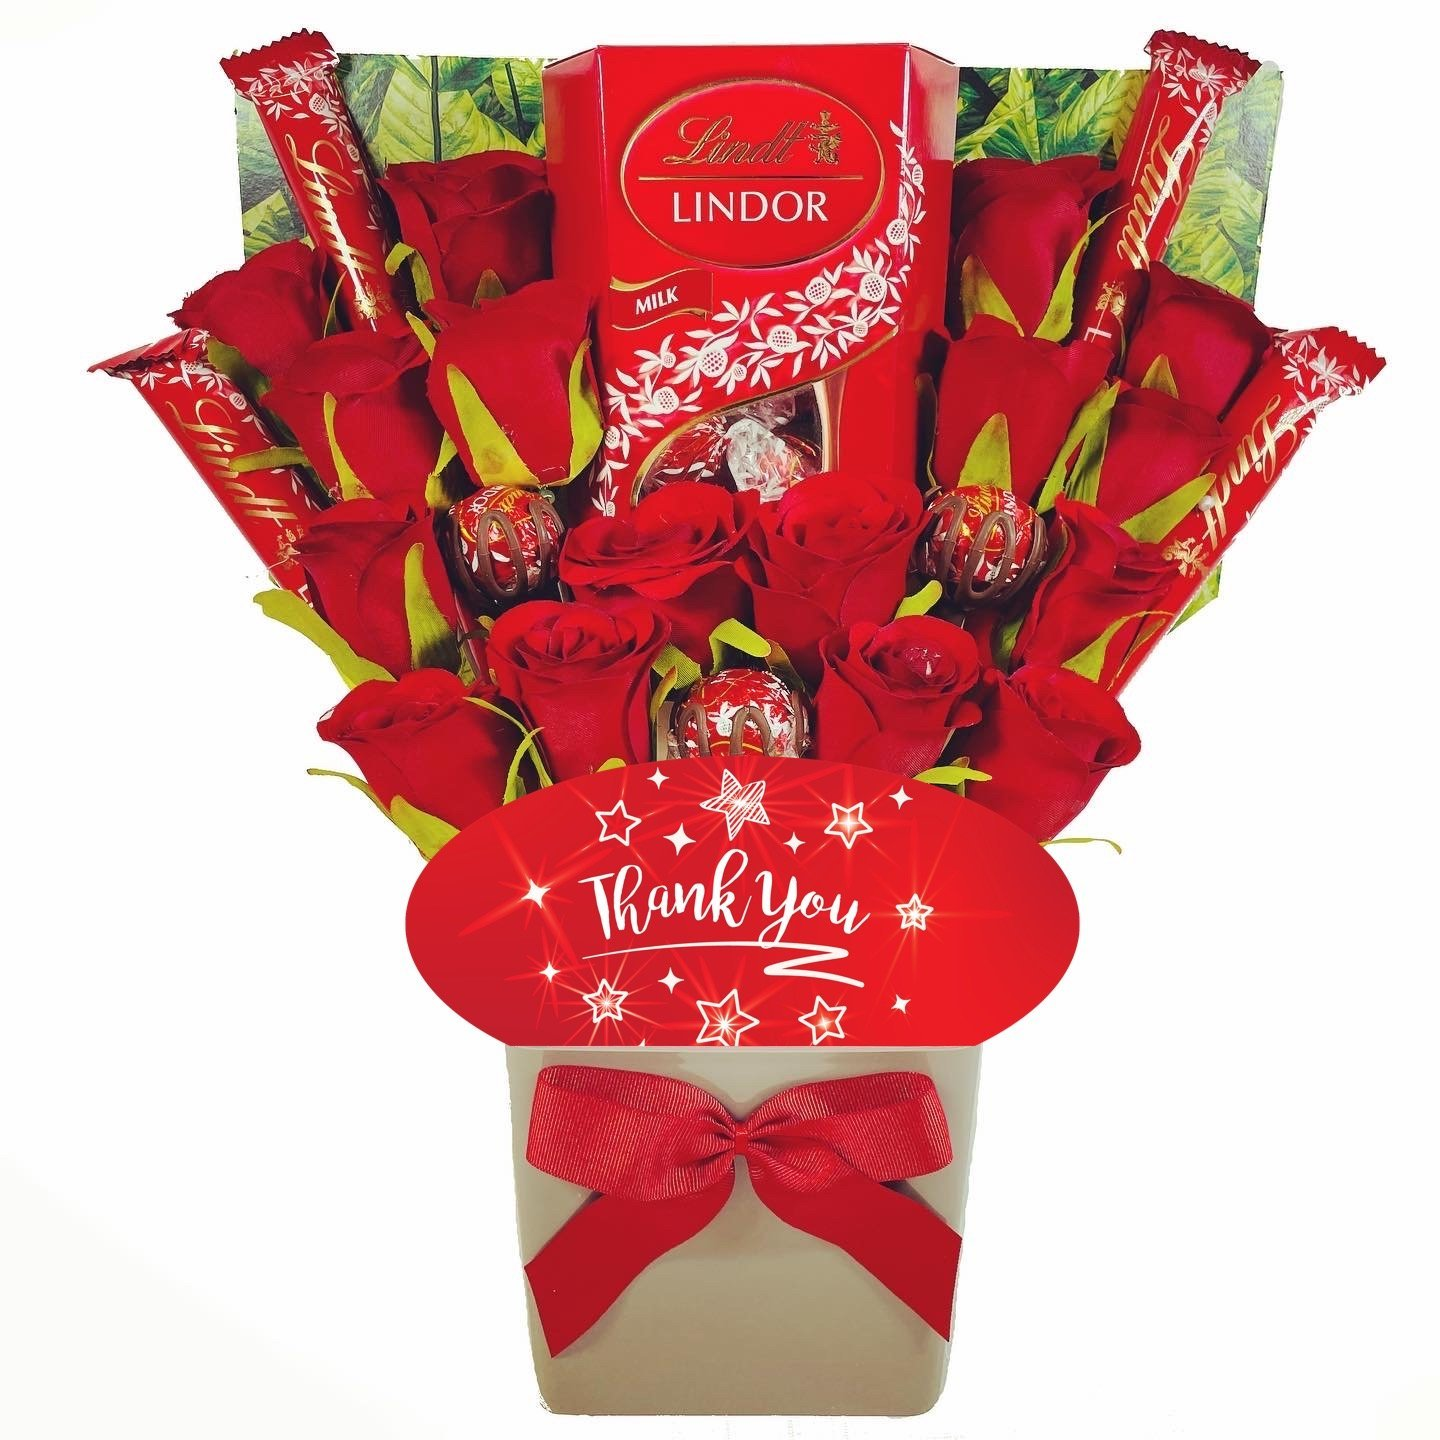 The Thank You Lindt Lindor Chocolate Bouquet